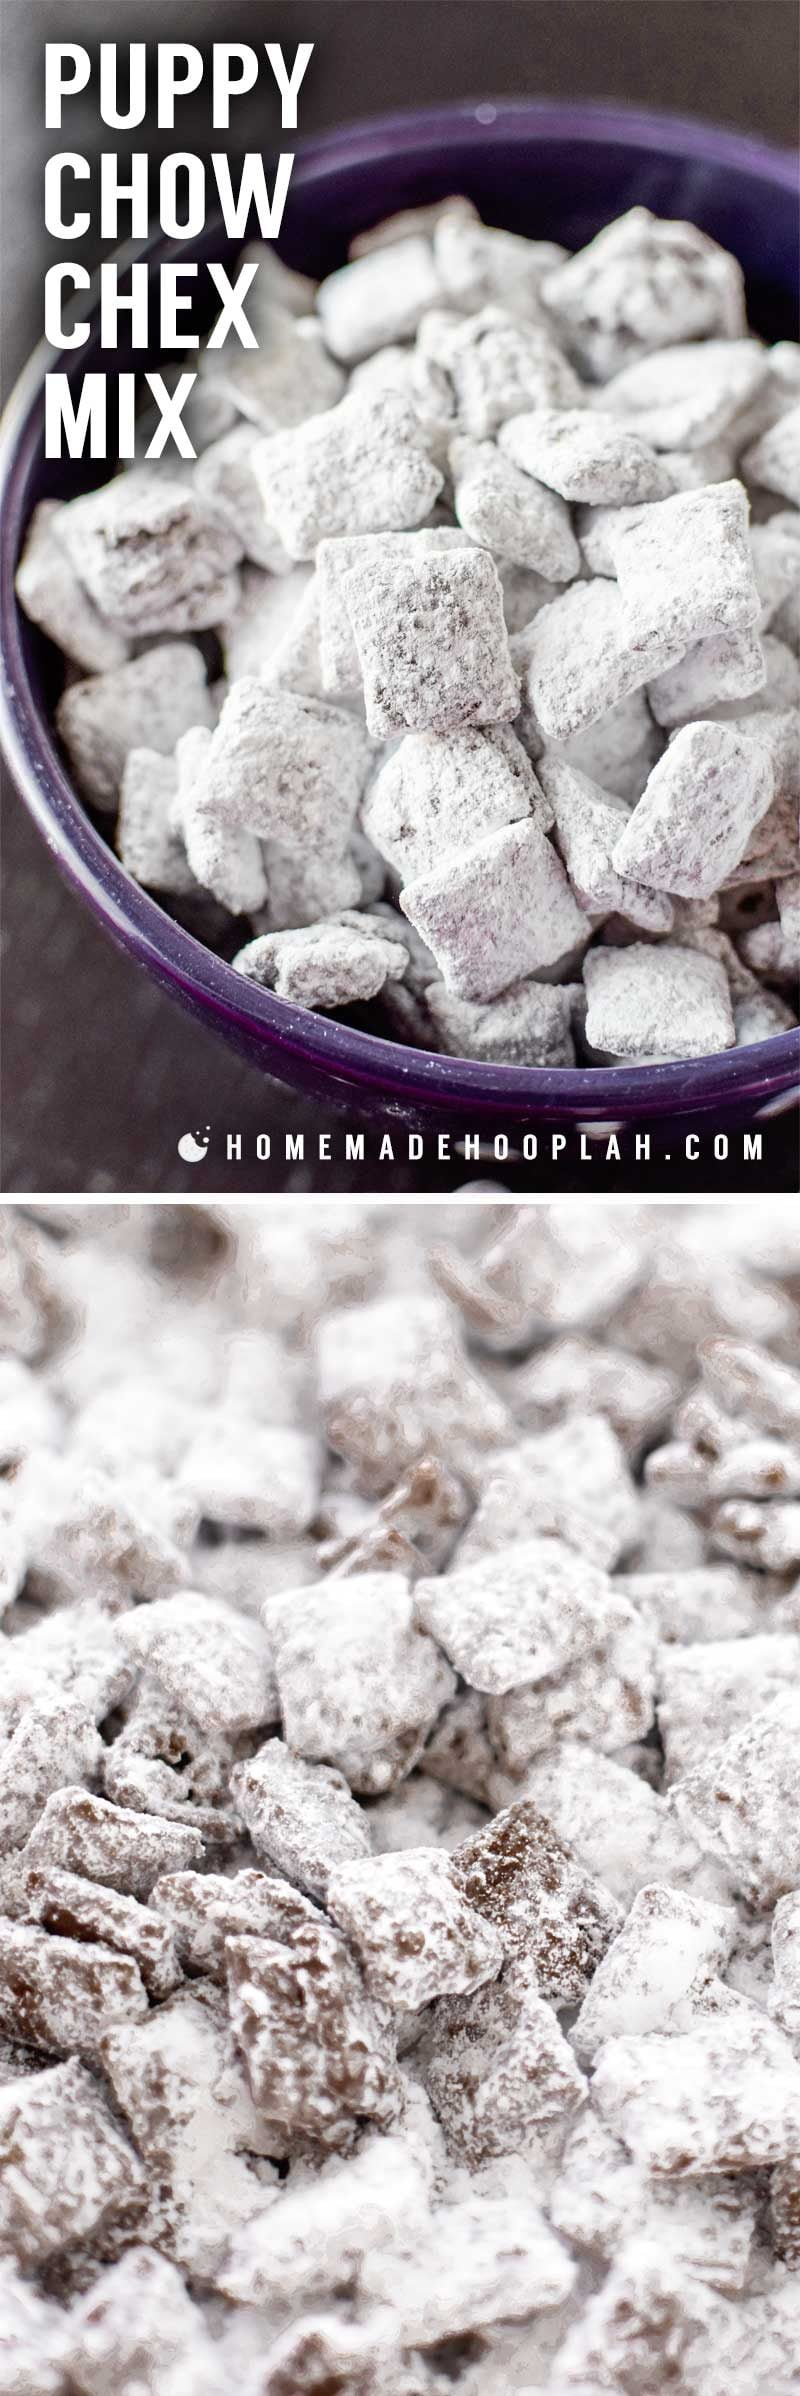 How to make muddy buddies.